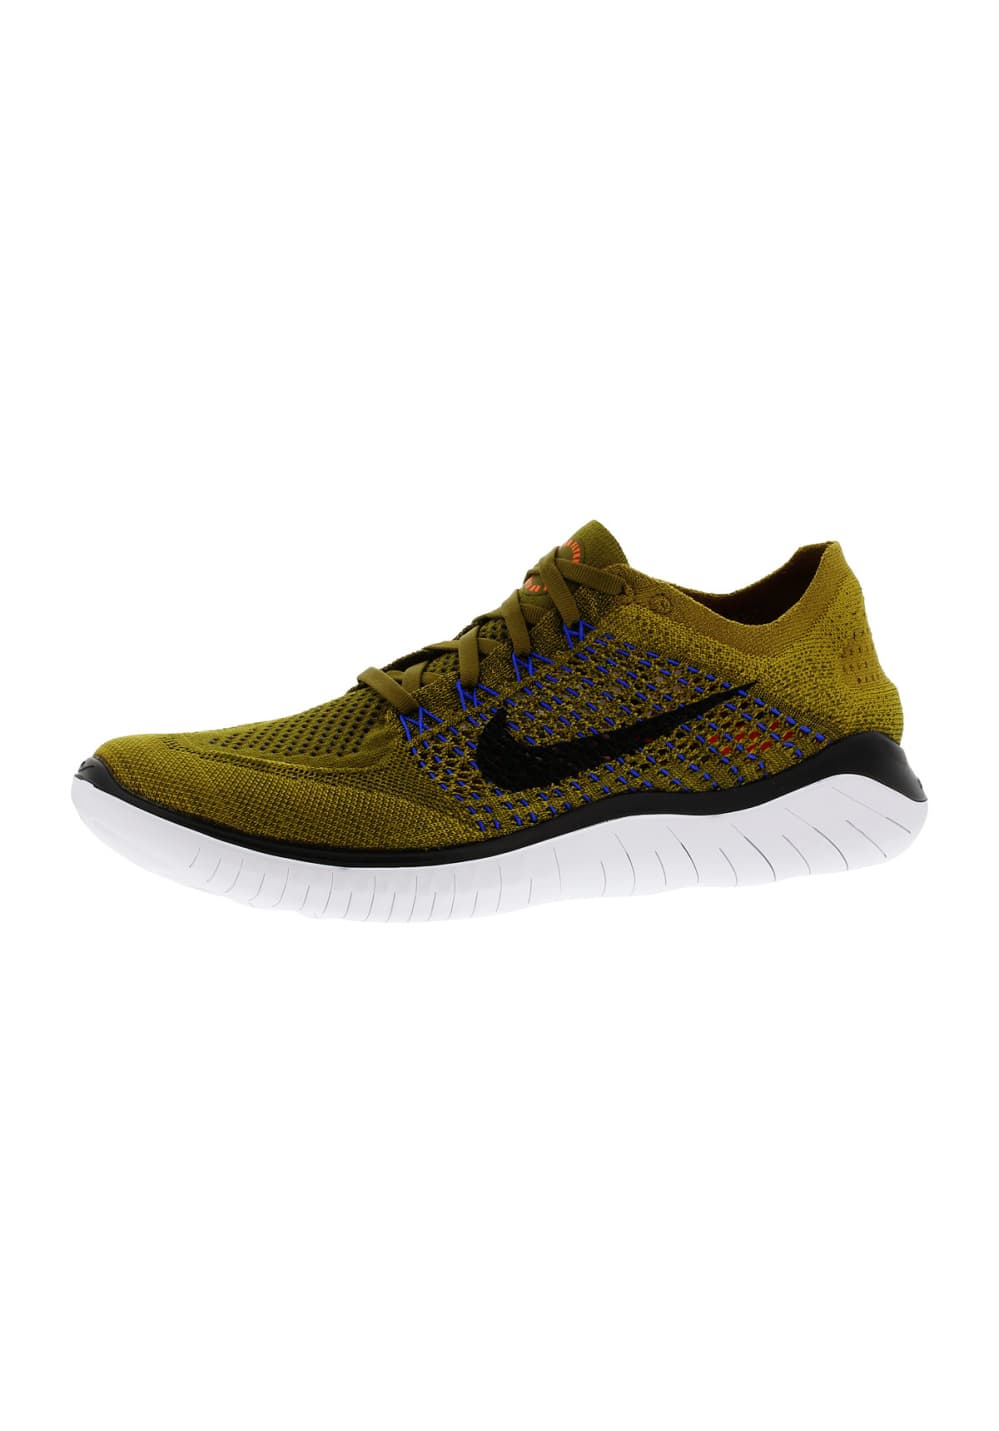 8808c643c828 Next. -60%. This product is currently out of stock. Nike. Free RN Flyknit  2018 - Running shoes for Men